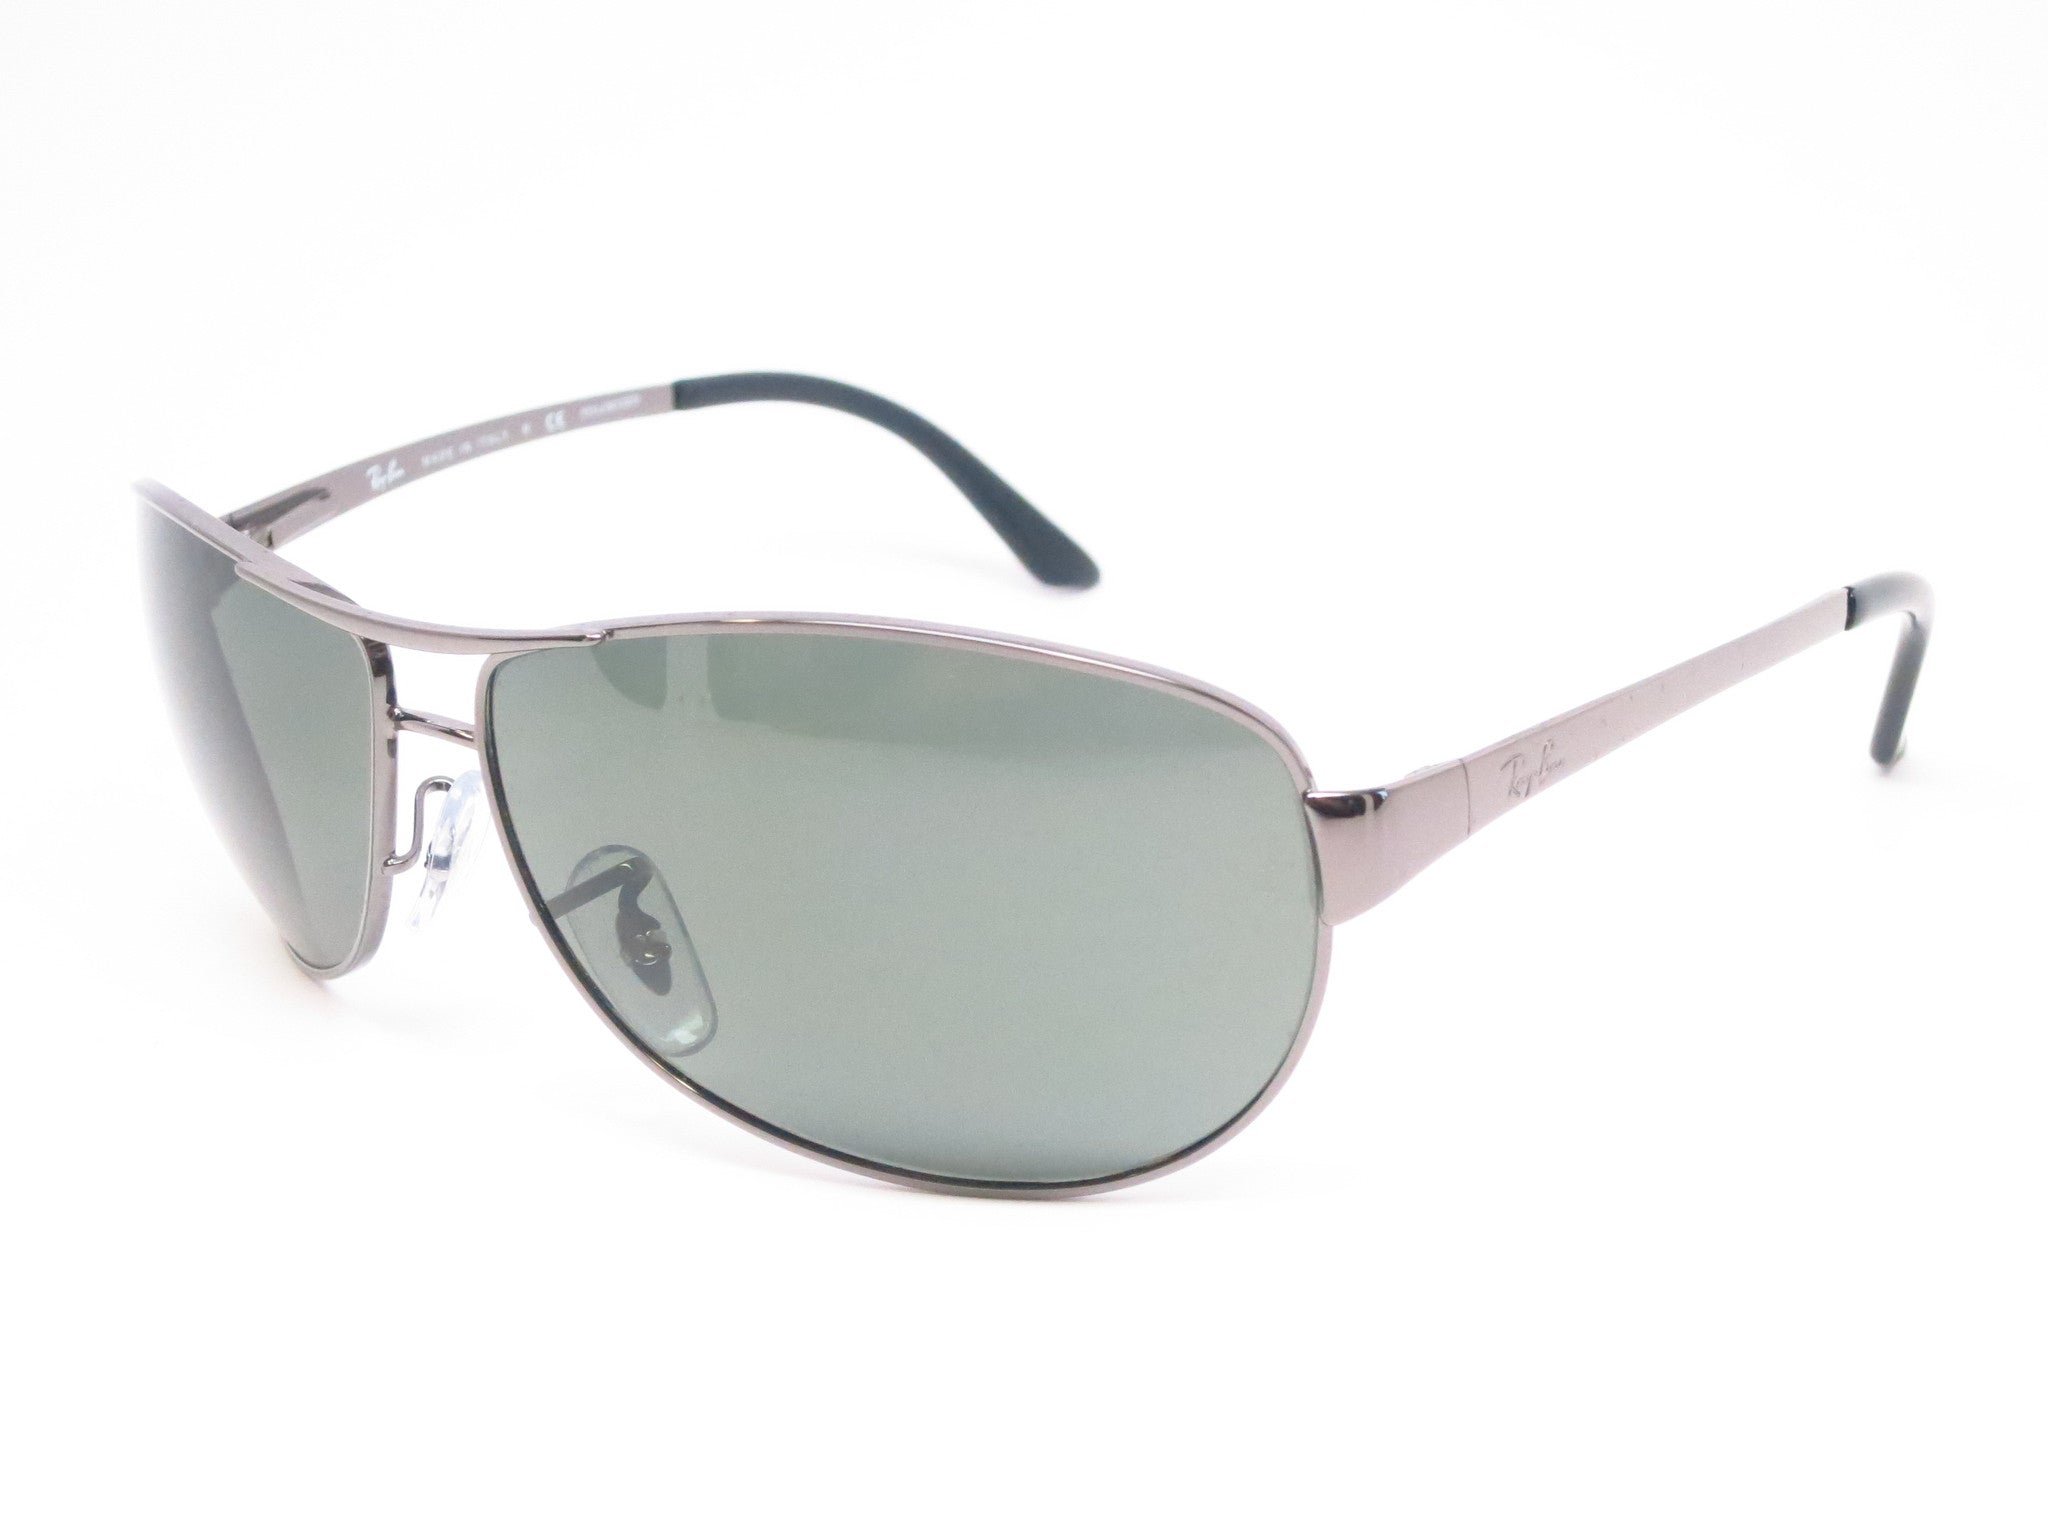 d4db8aa9f4 Ray-Ban RB 3342 Warrior 004/58 Gunmetal Polarized Sunglasses - Eye Heart  Shades ...